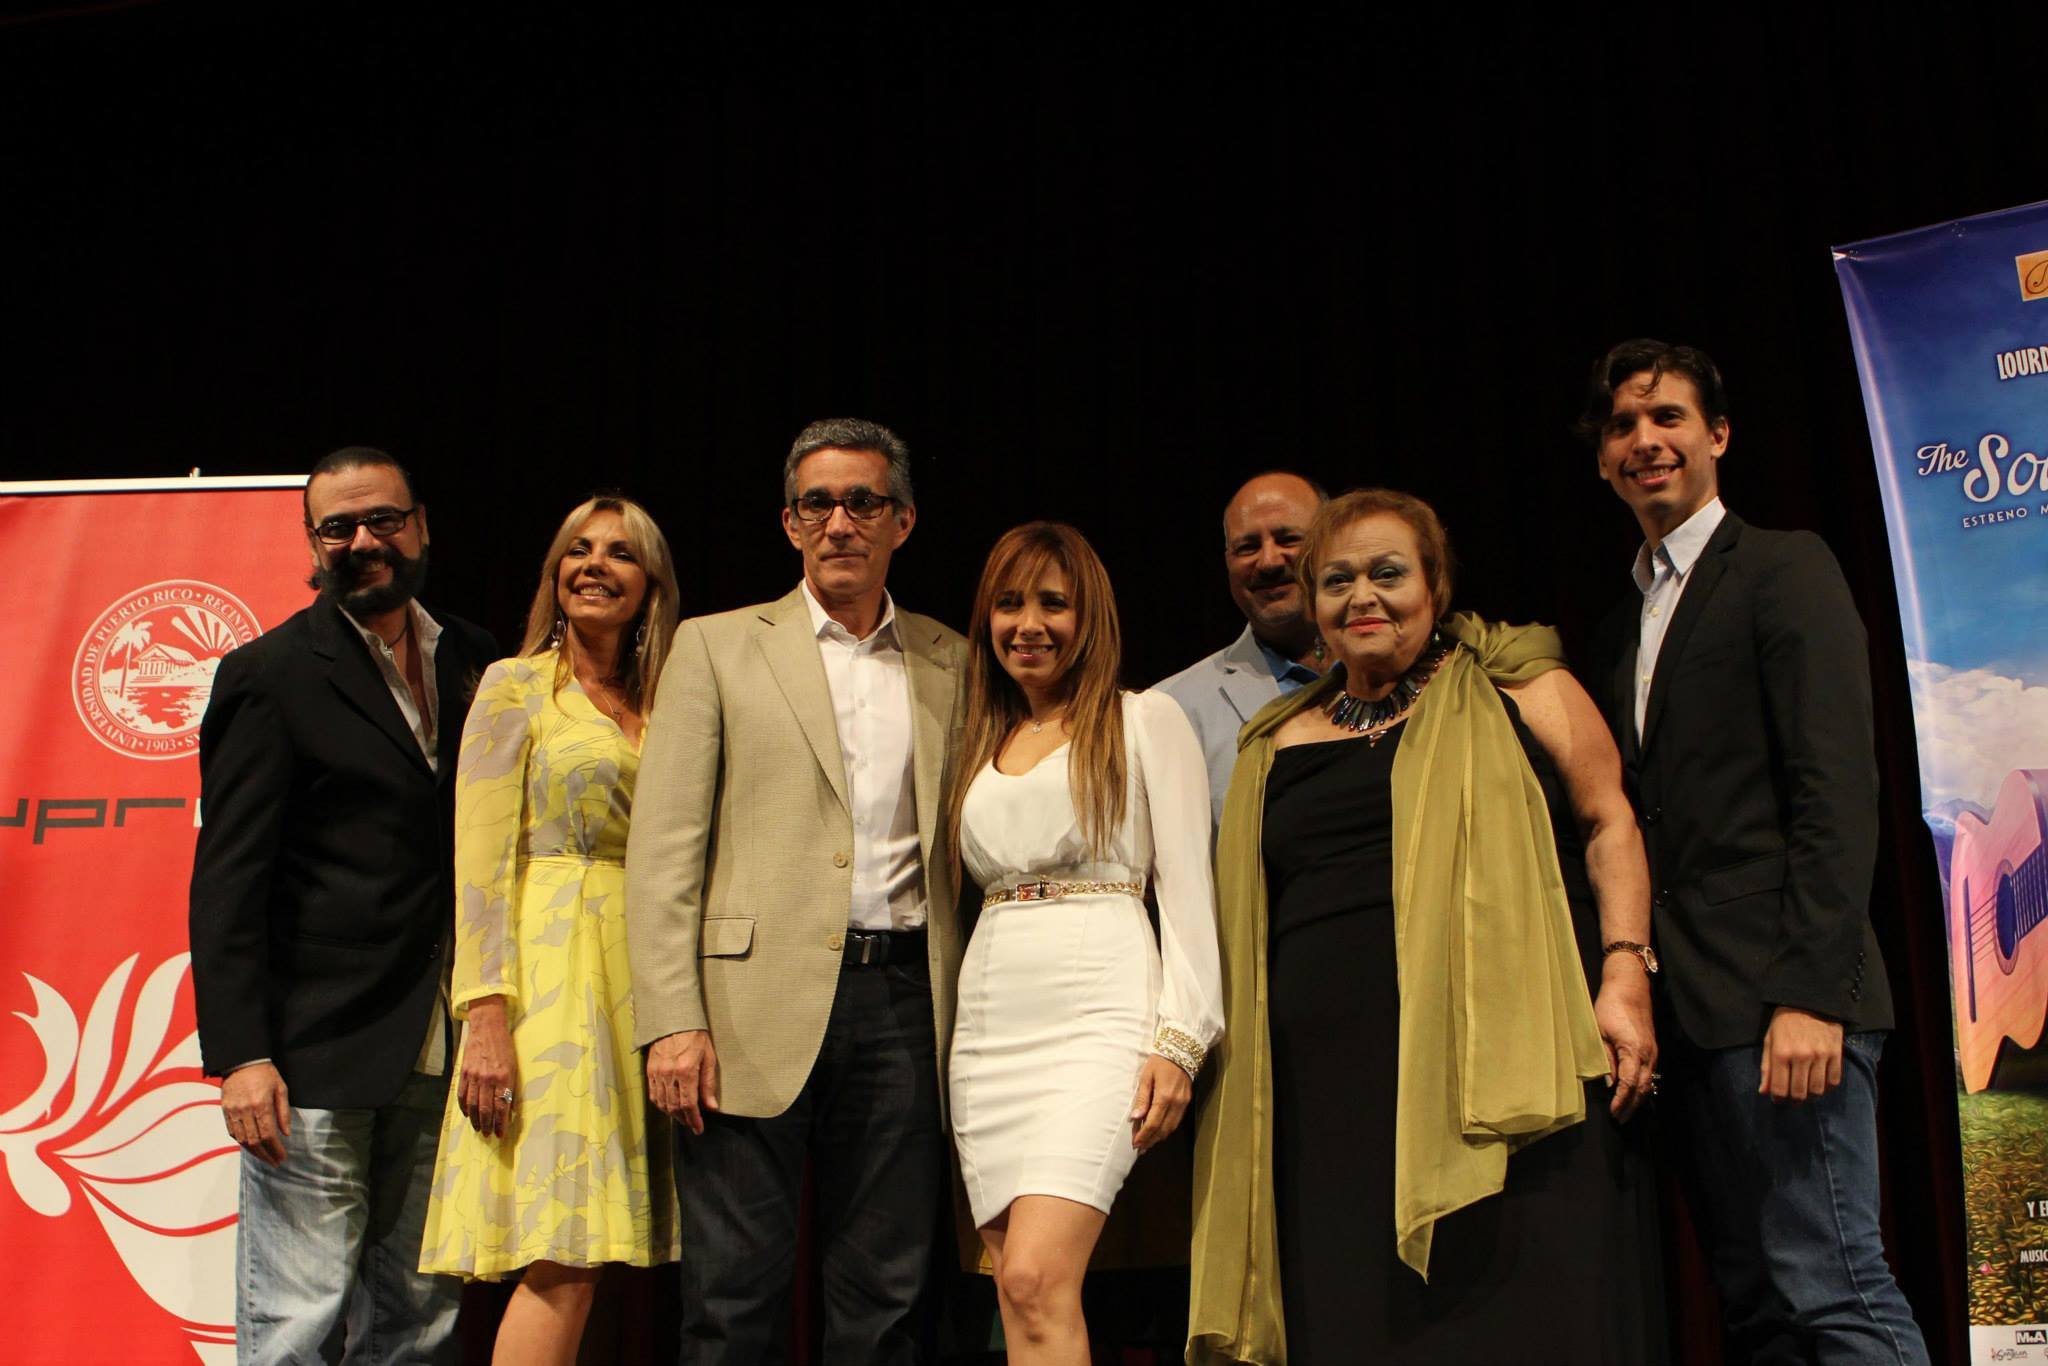 Elenco The Sound of Music